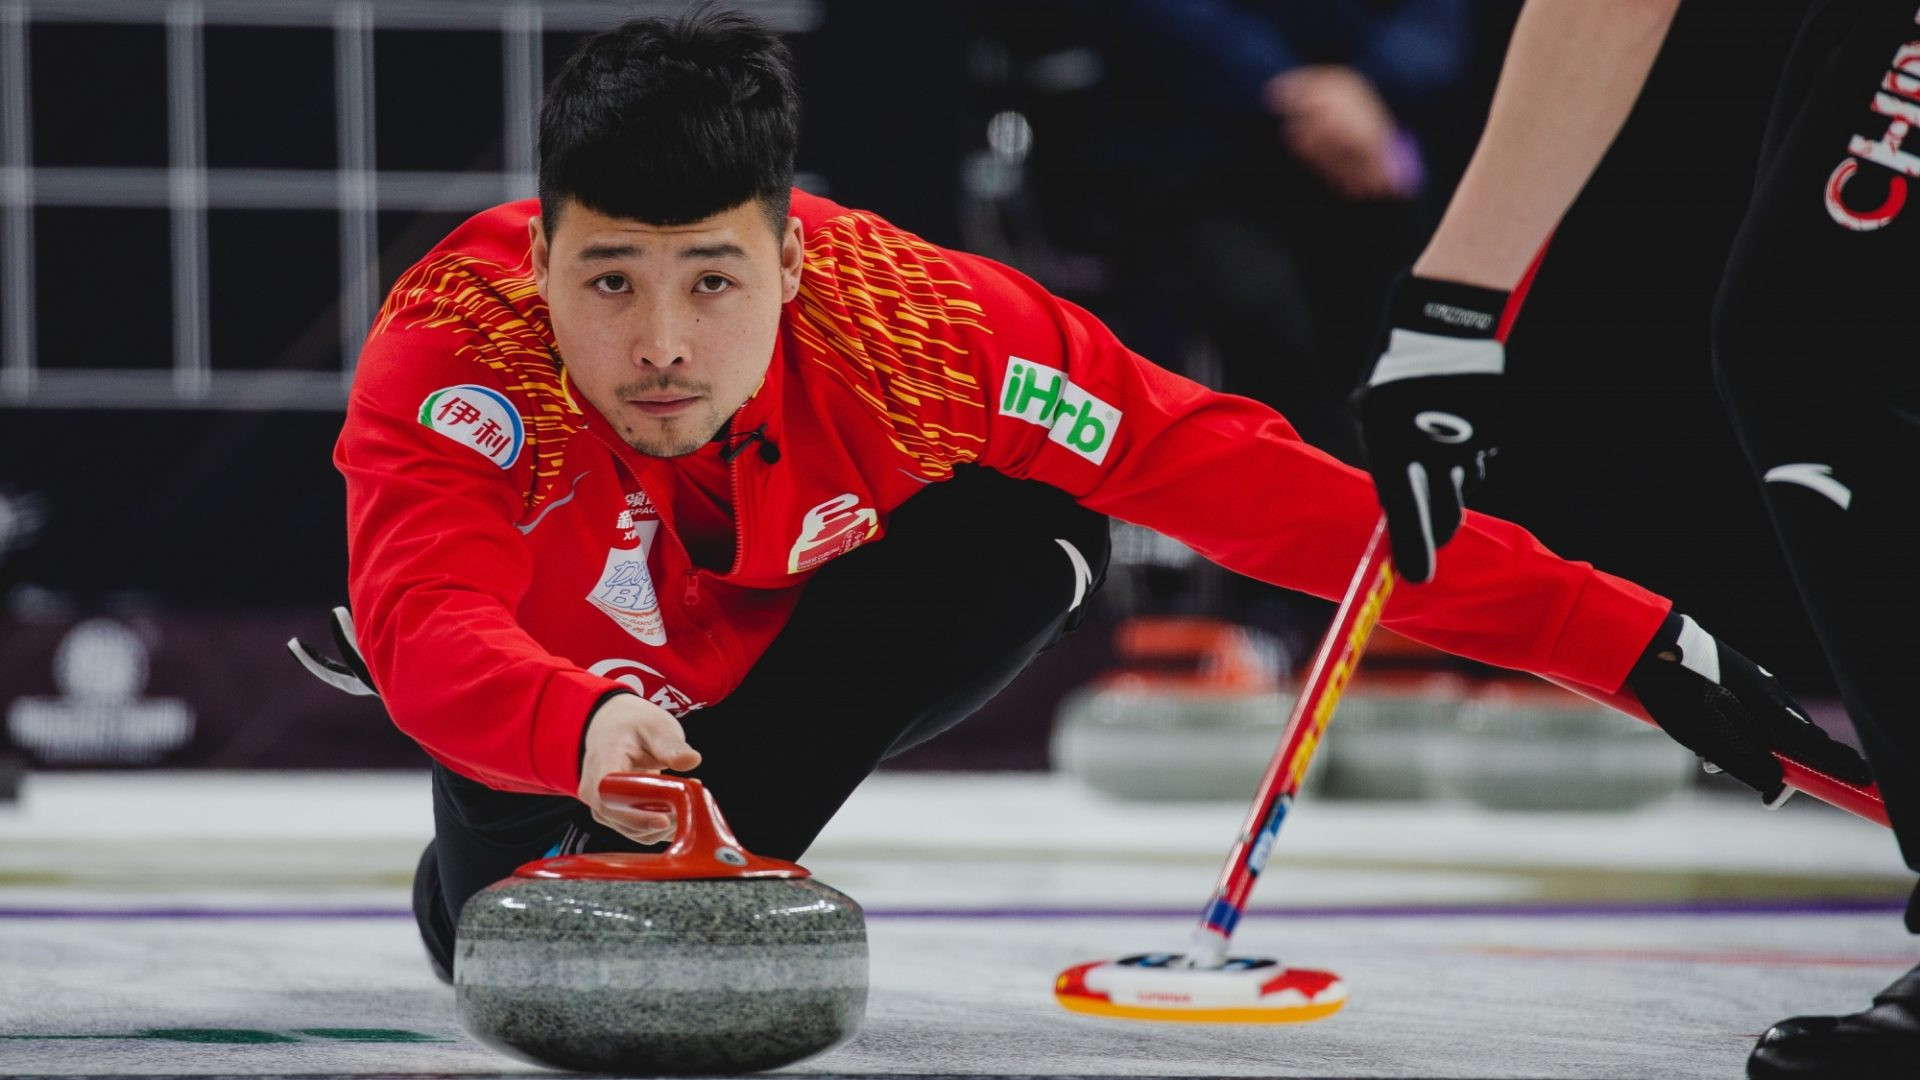 World champions defeated by hosts on opening day of Curling World Cup grand final in Beijing